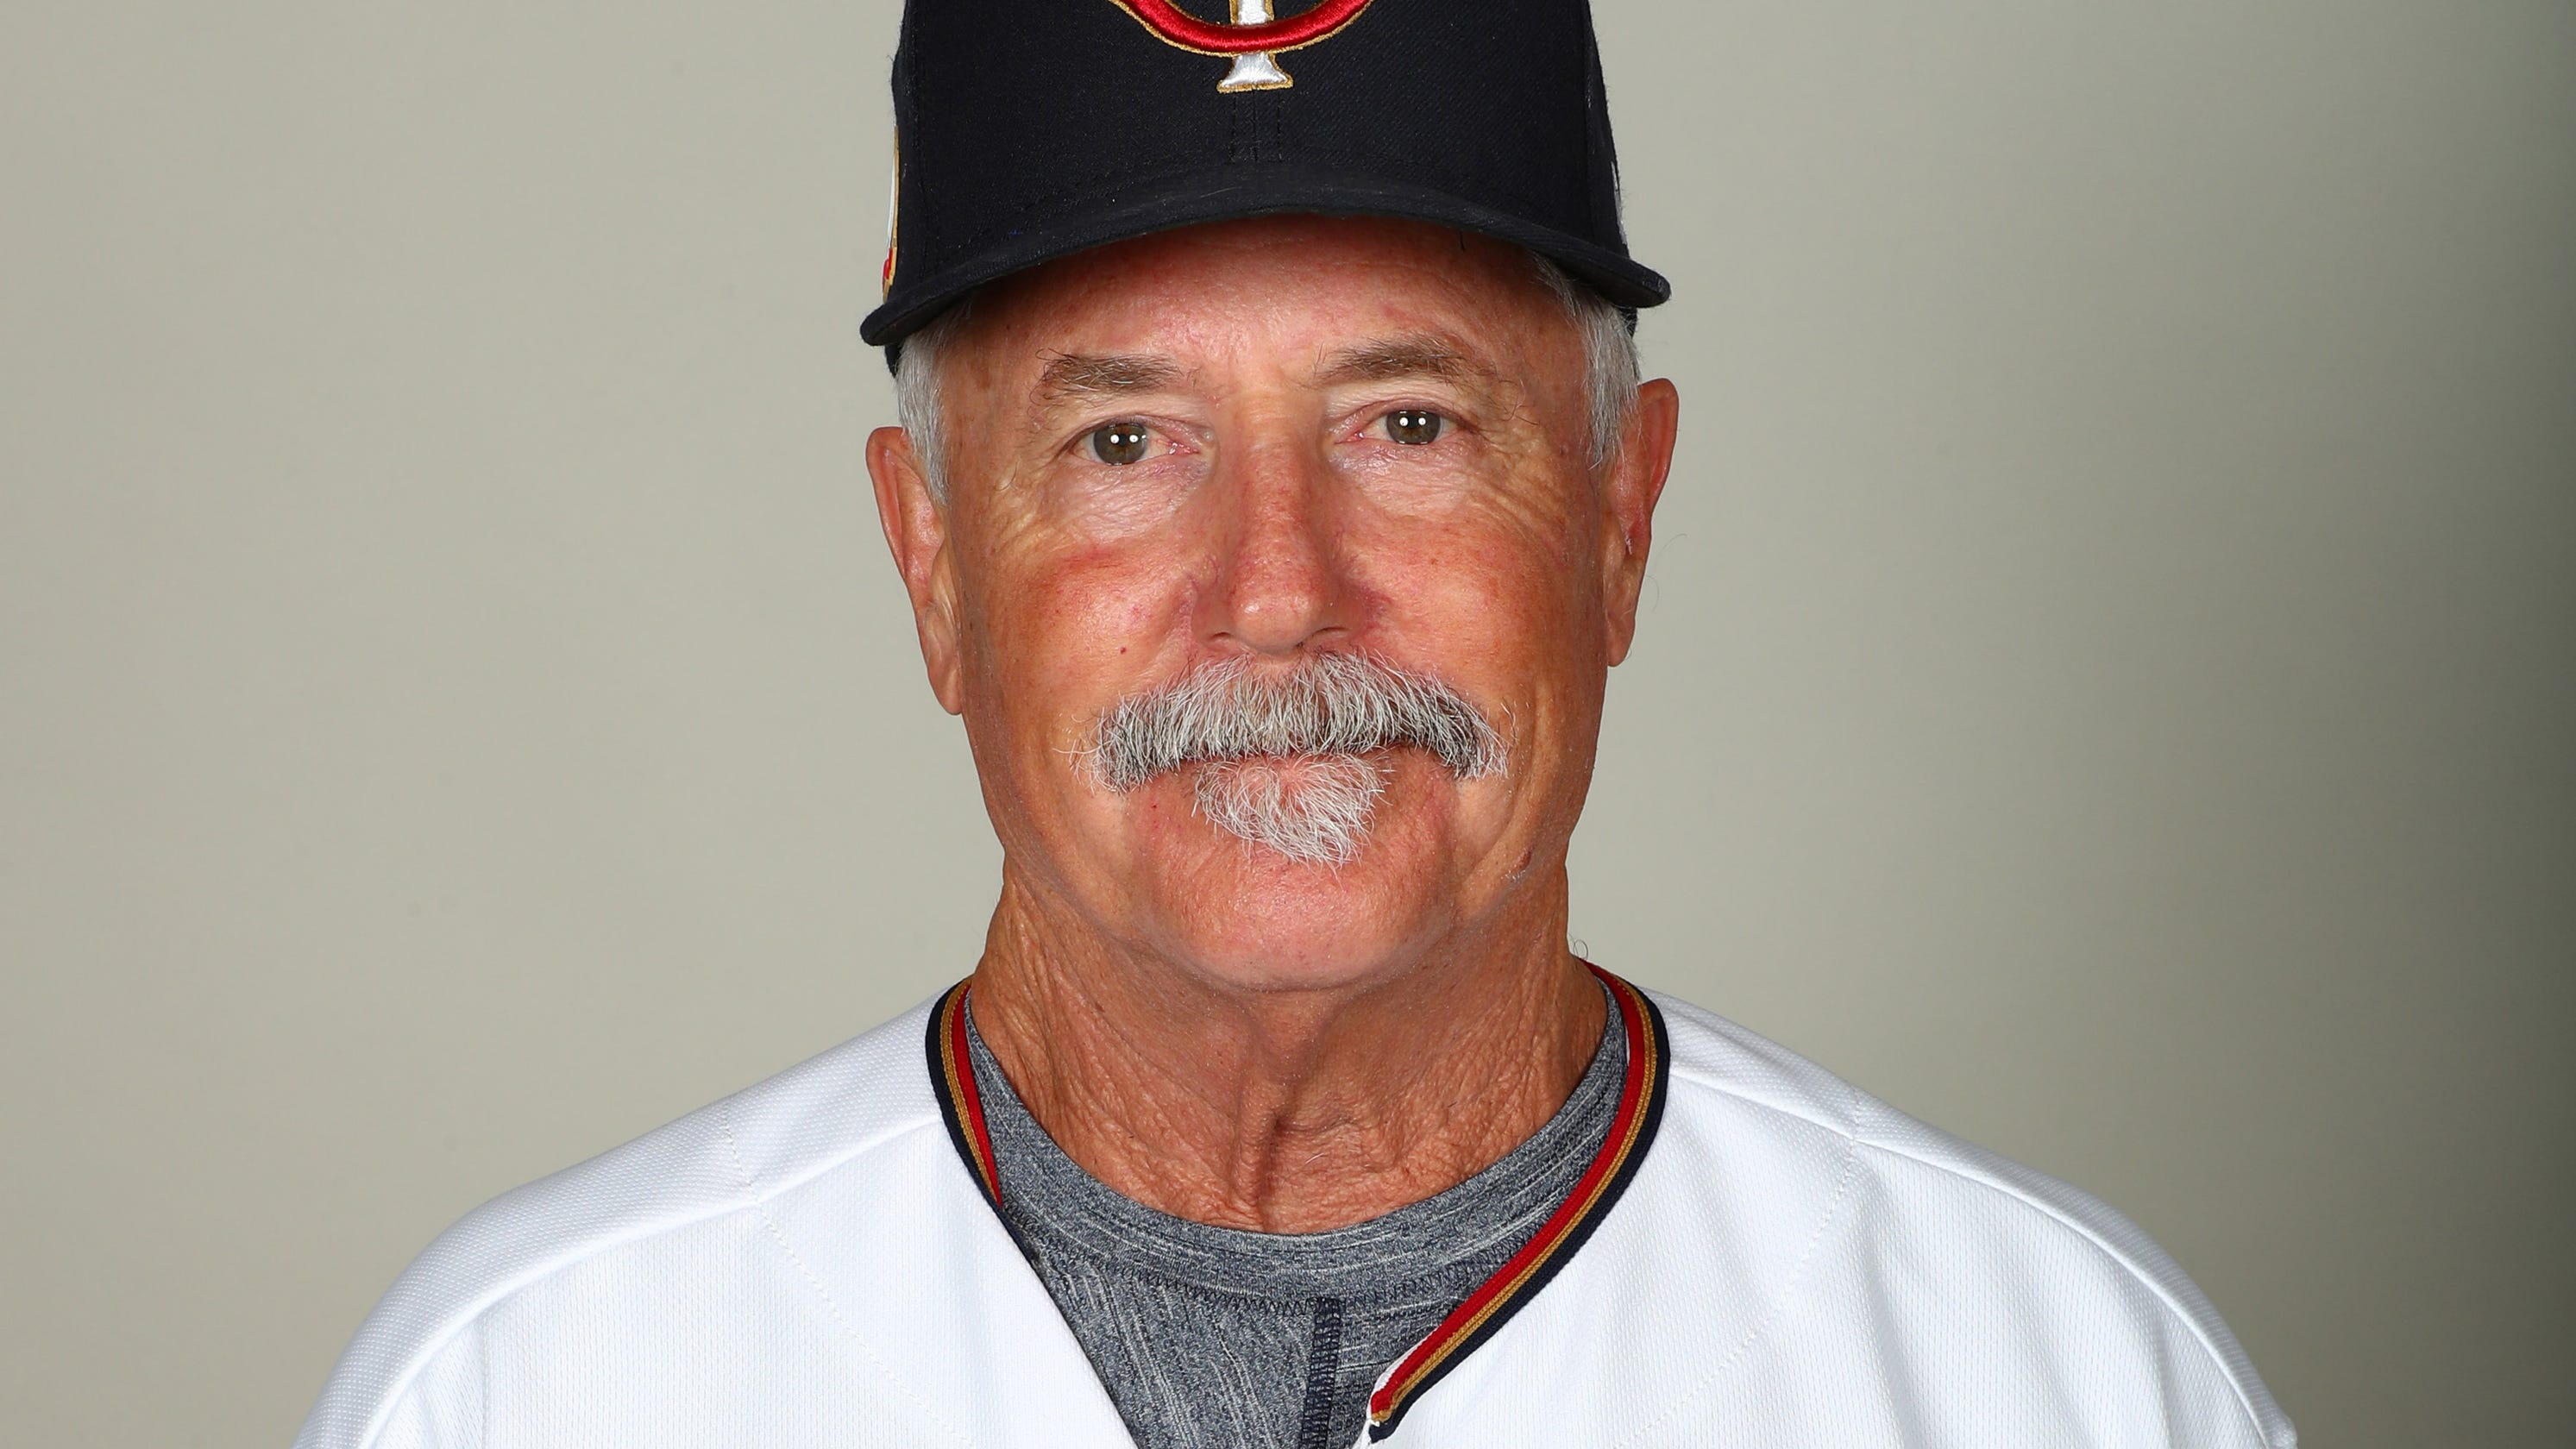 Minnesota Twins sideline two coaches because of COVID-19 concerns